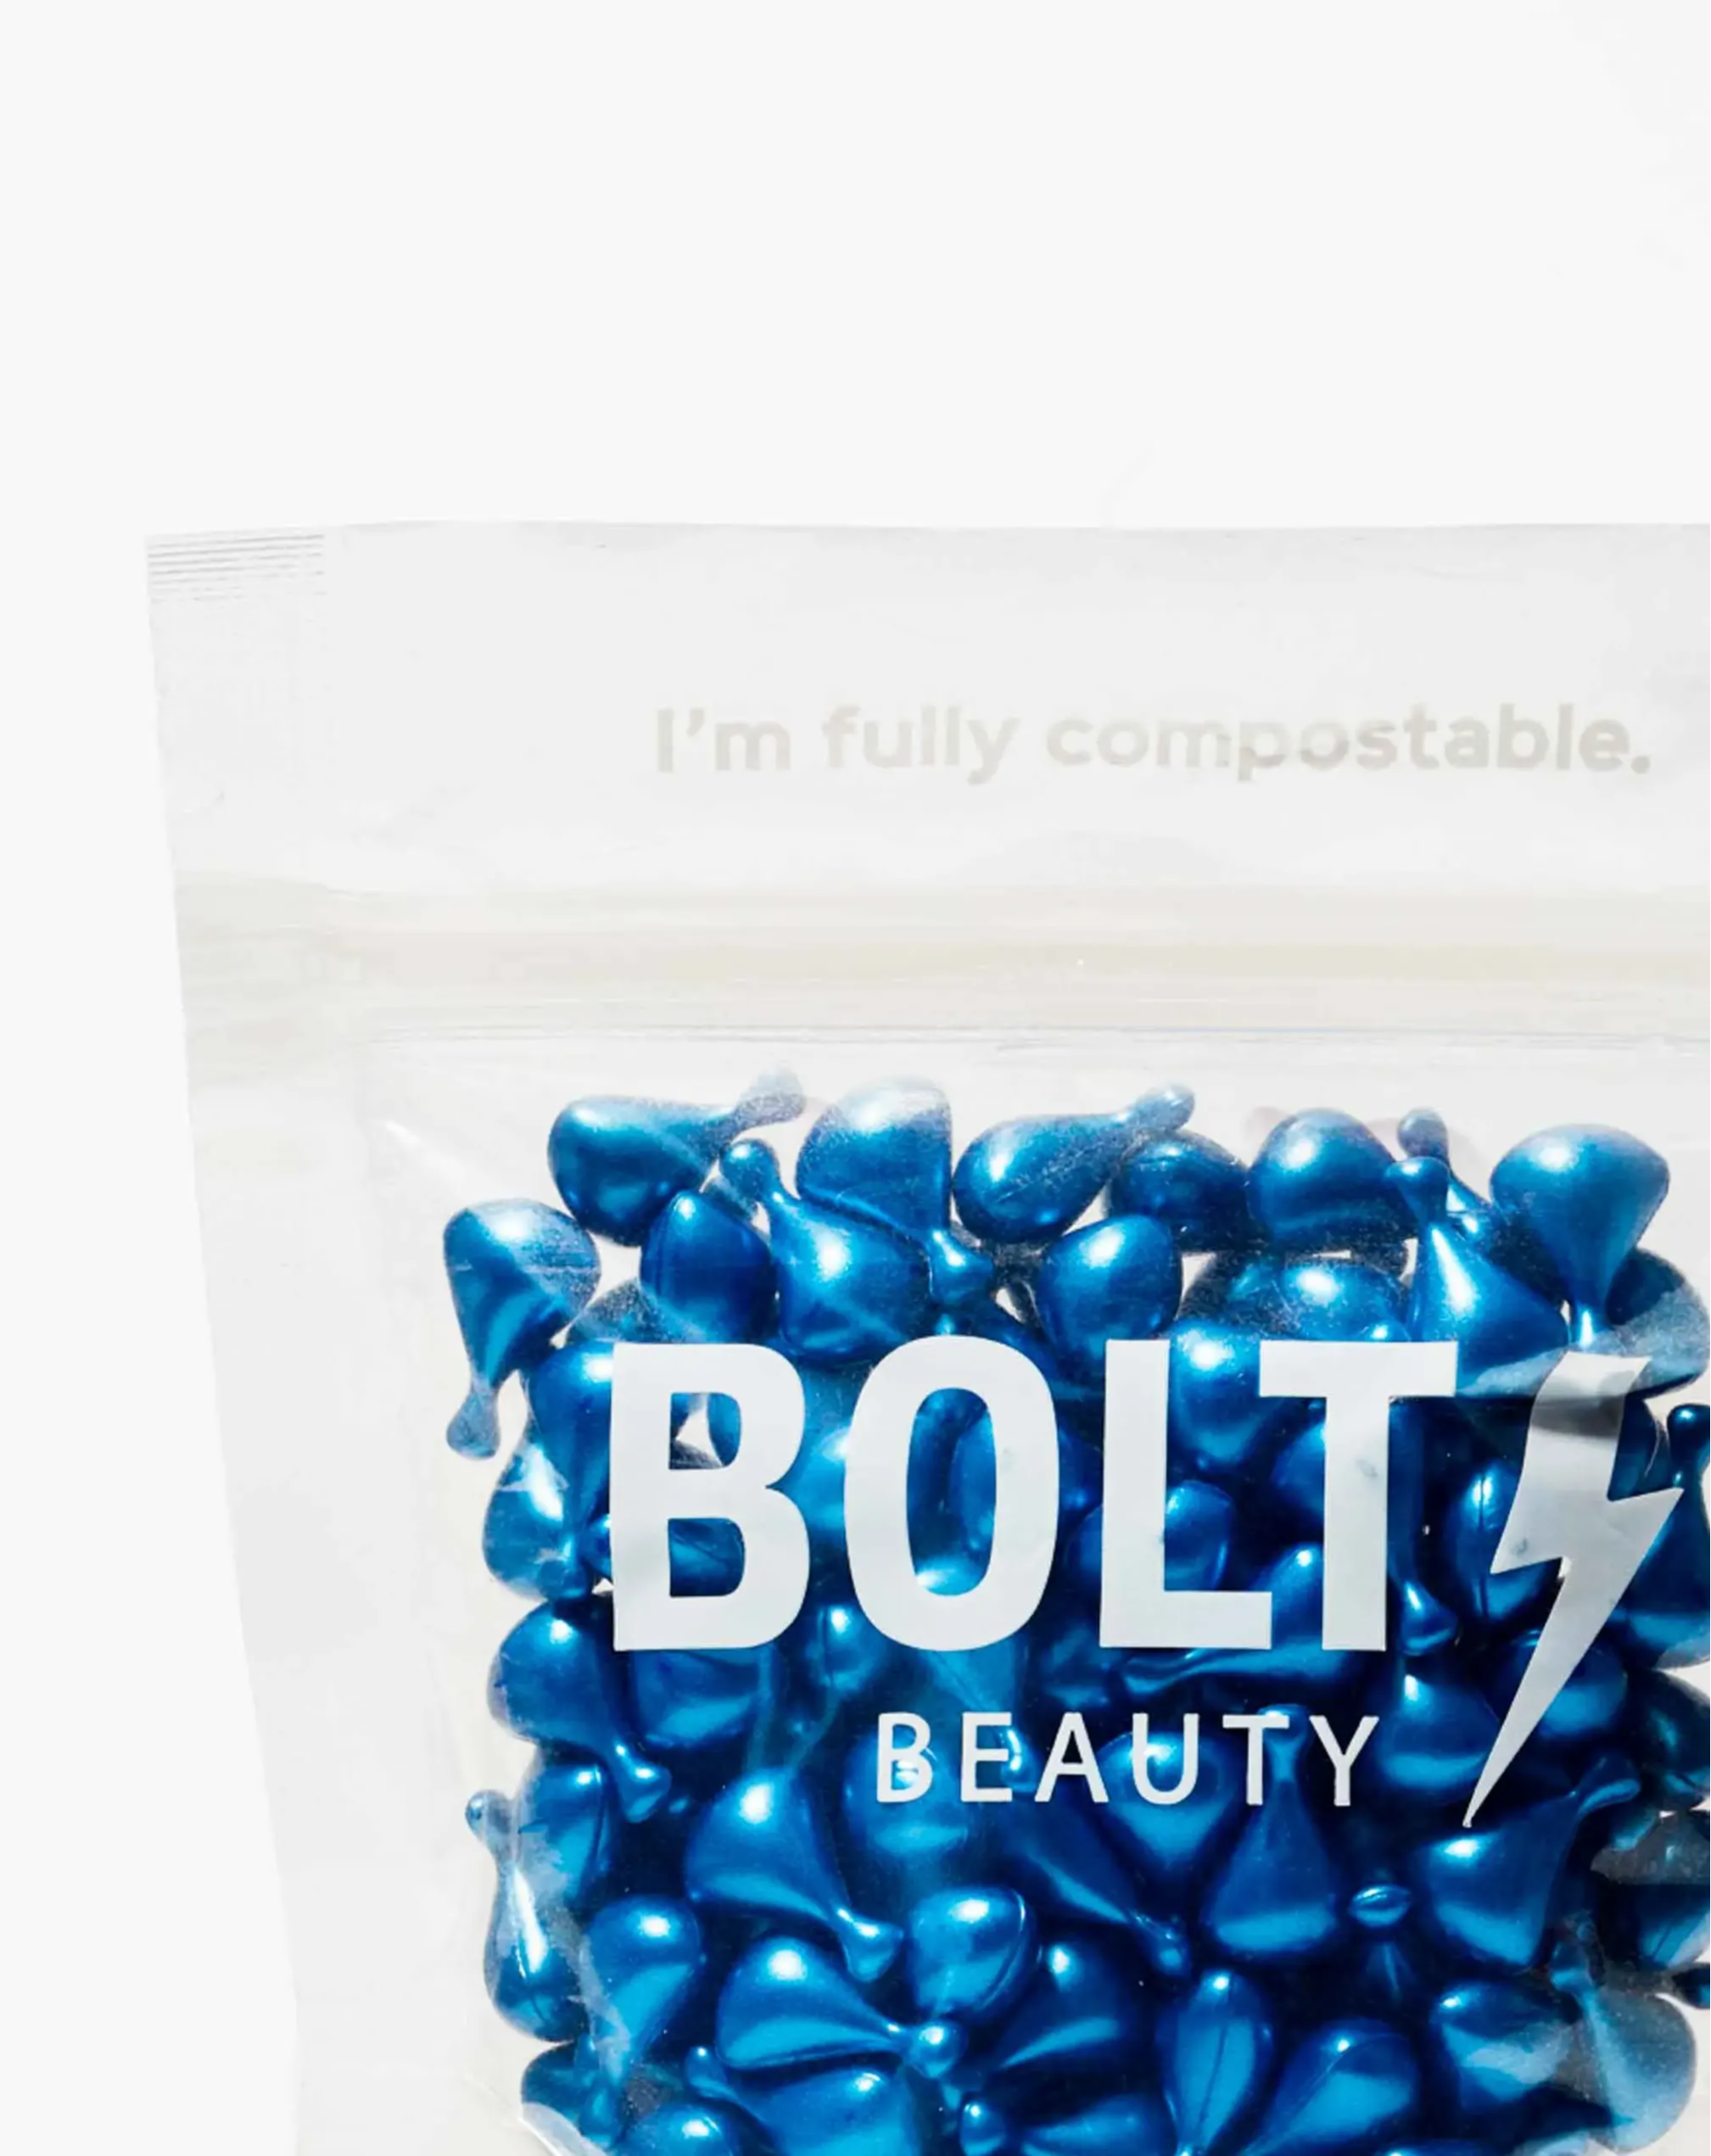 Bolt Beauty - Eco friendly skincare - skincare made from seaweed